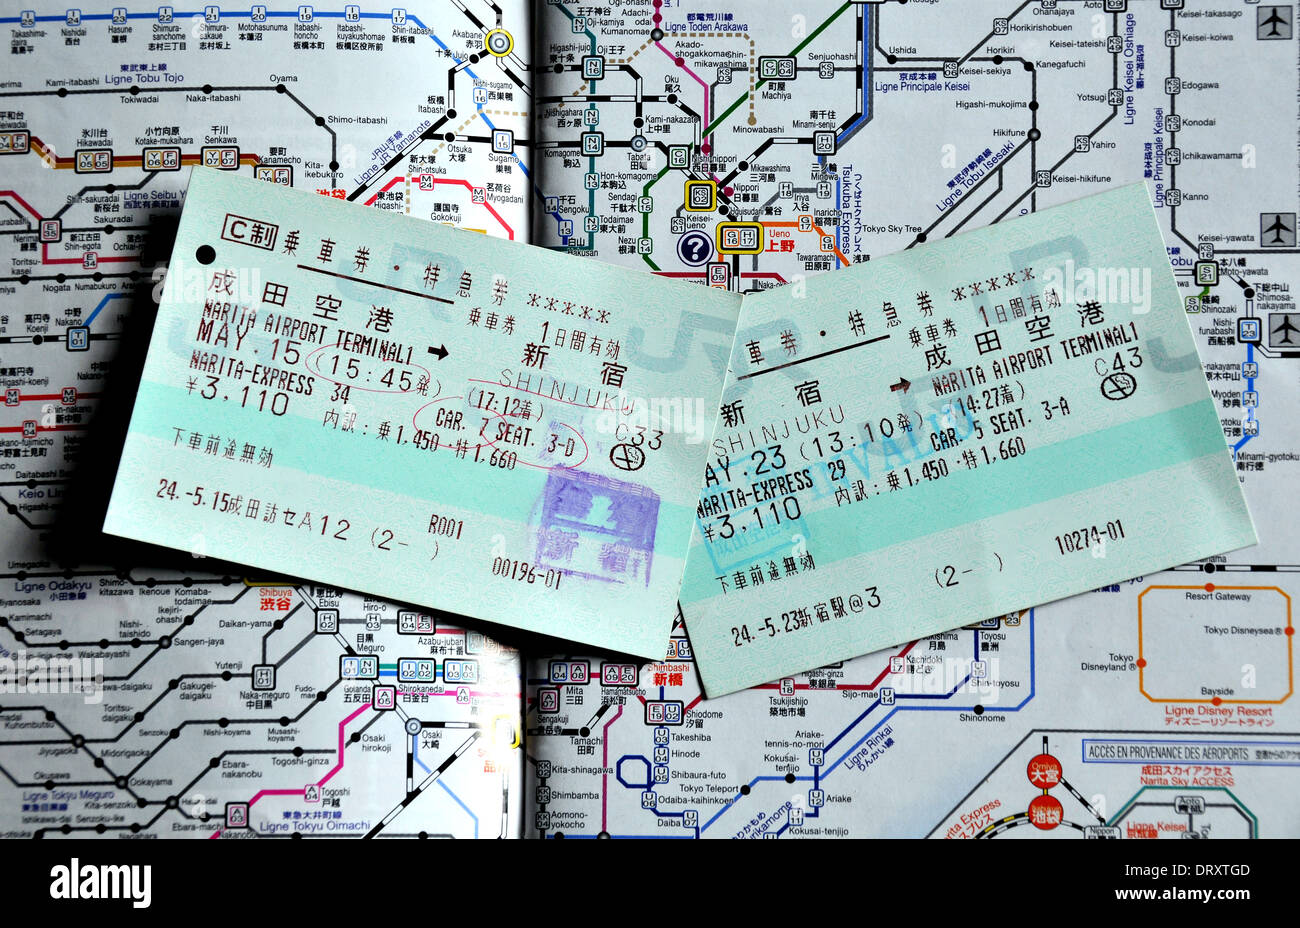 train ticket on the JR train network map - Stock Image